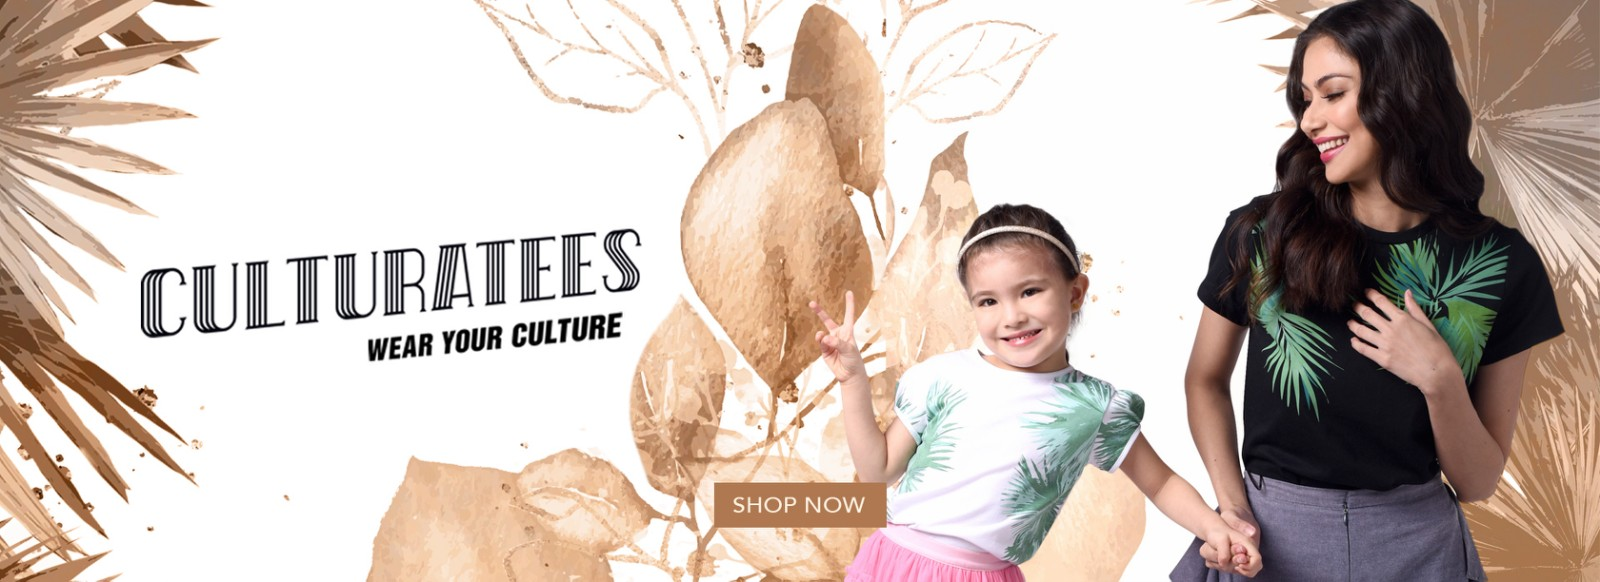 CULTURATEES-SHOP-NOW-BANNER-DESKTOP